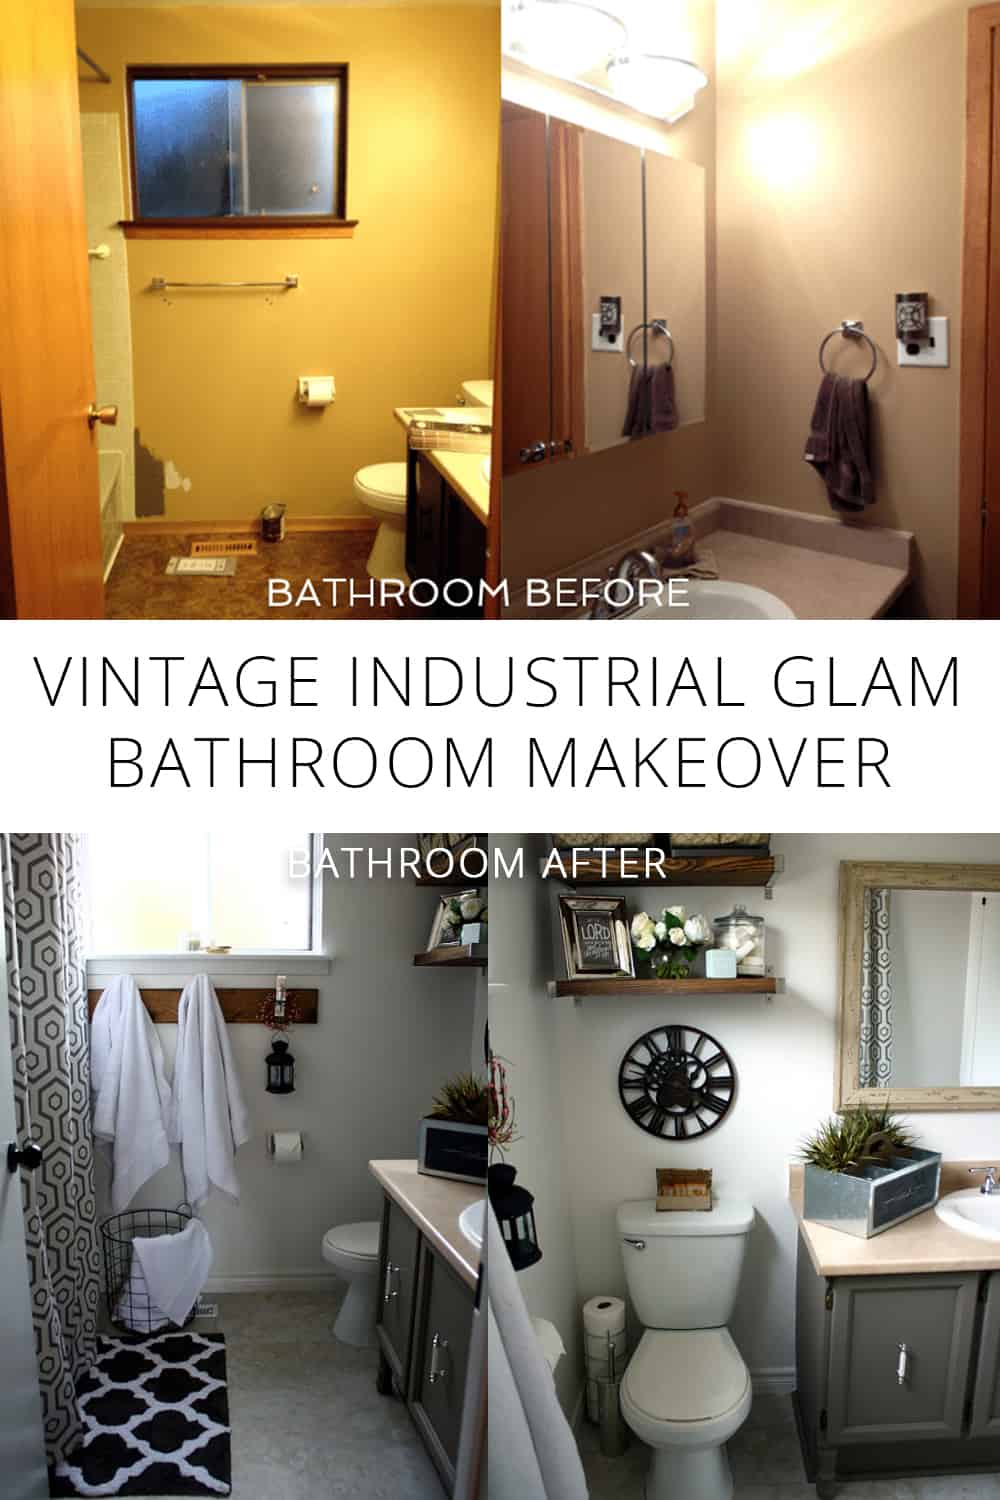 Vintage Industrial Glam Bathroom Reveal